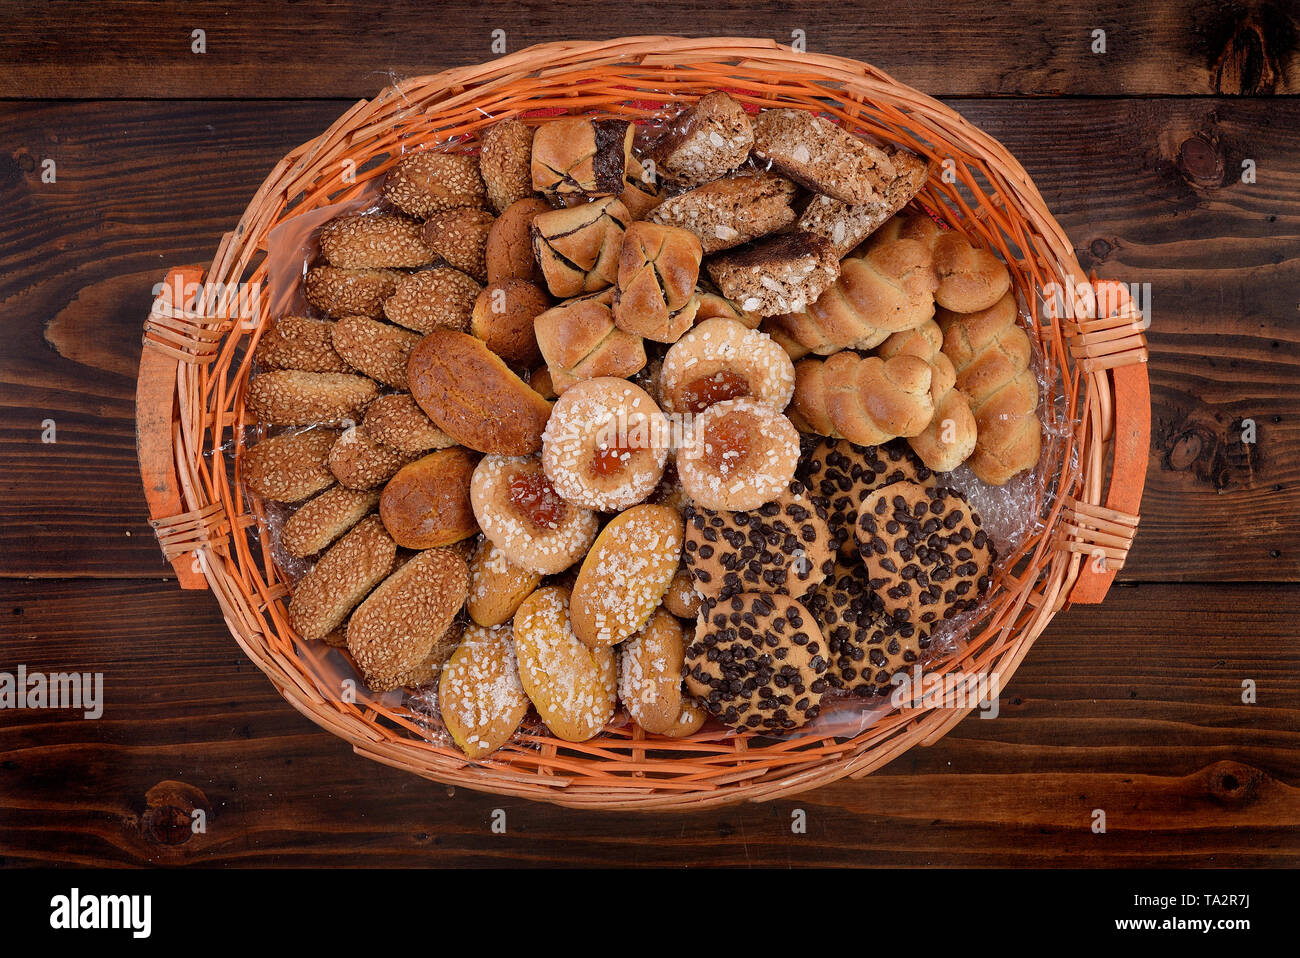 Basket with assortment of cookies on wooden board - Stock Image